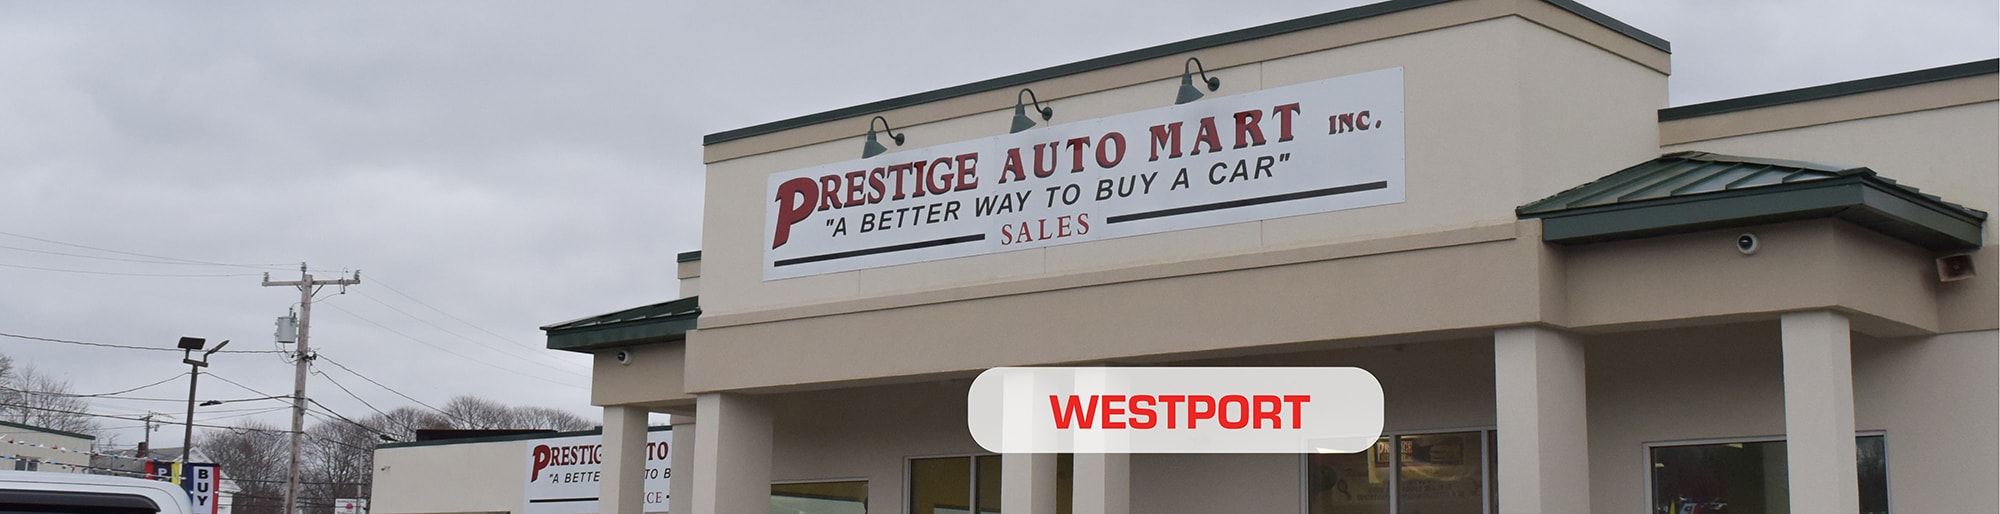 westport ma pre owned used car dealer prestige auto mart. Black Bedroom Furniture Sets. Home Design Ideas